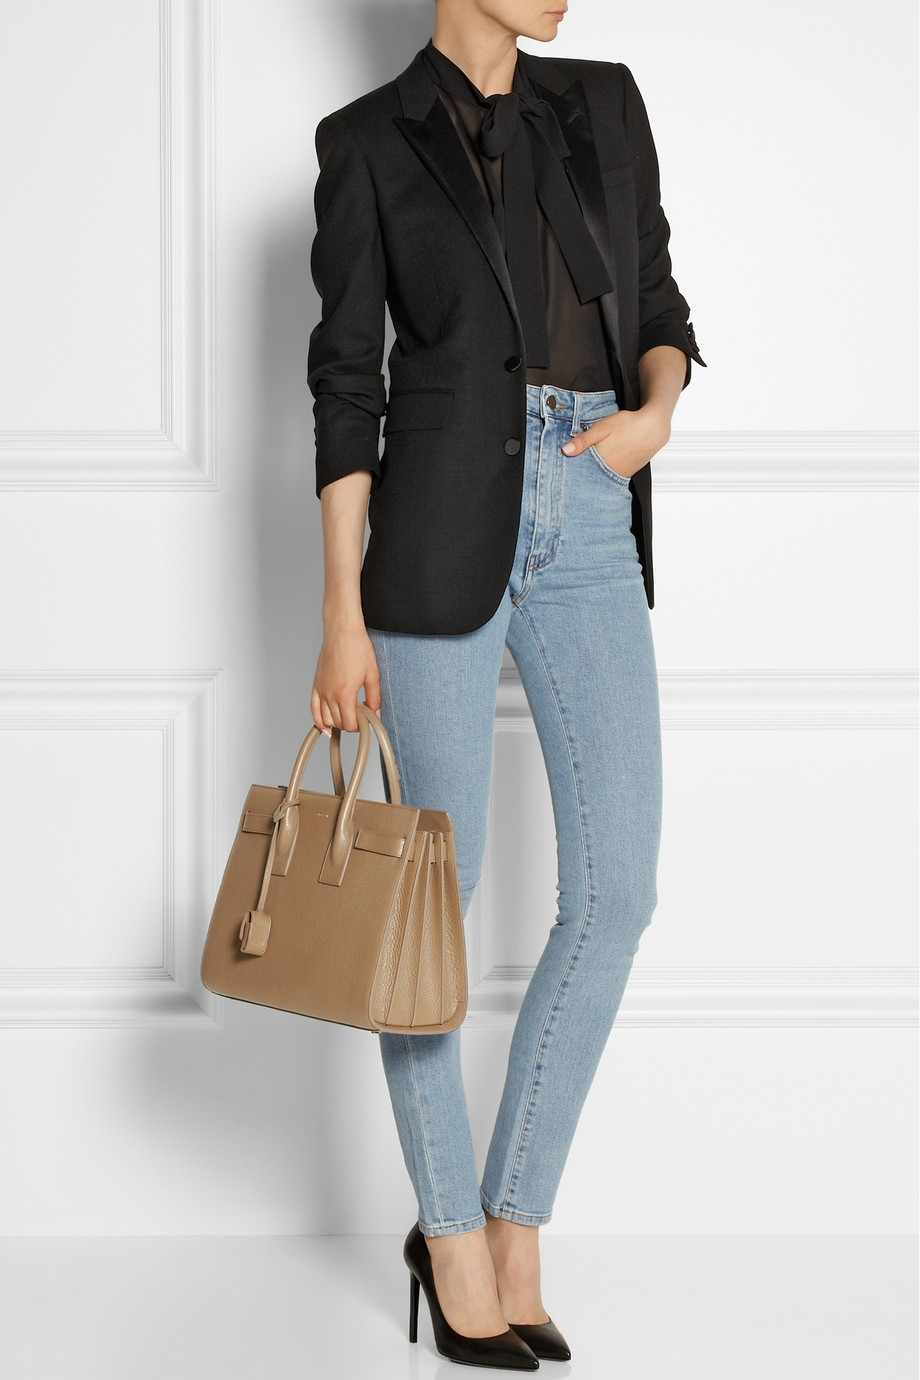 e89ca86275 Saint Laurent Sac De Jour Small Leather Tote in Brown - Lyst